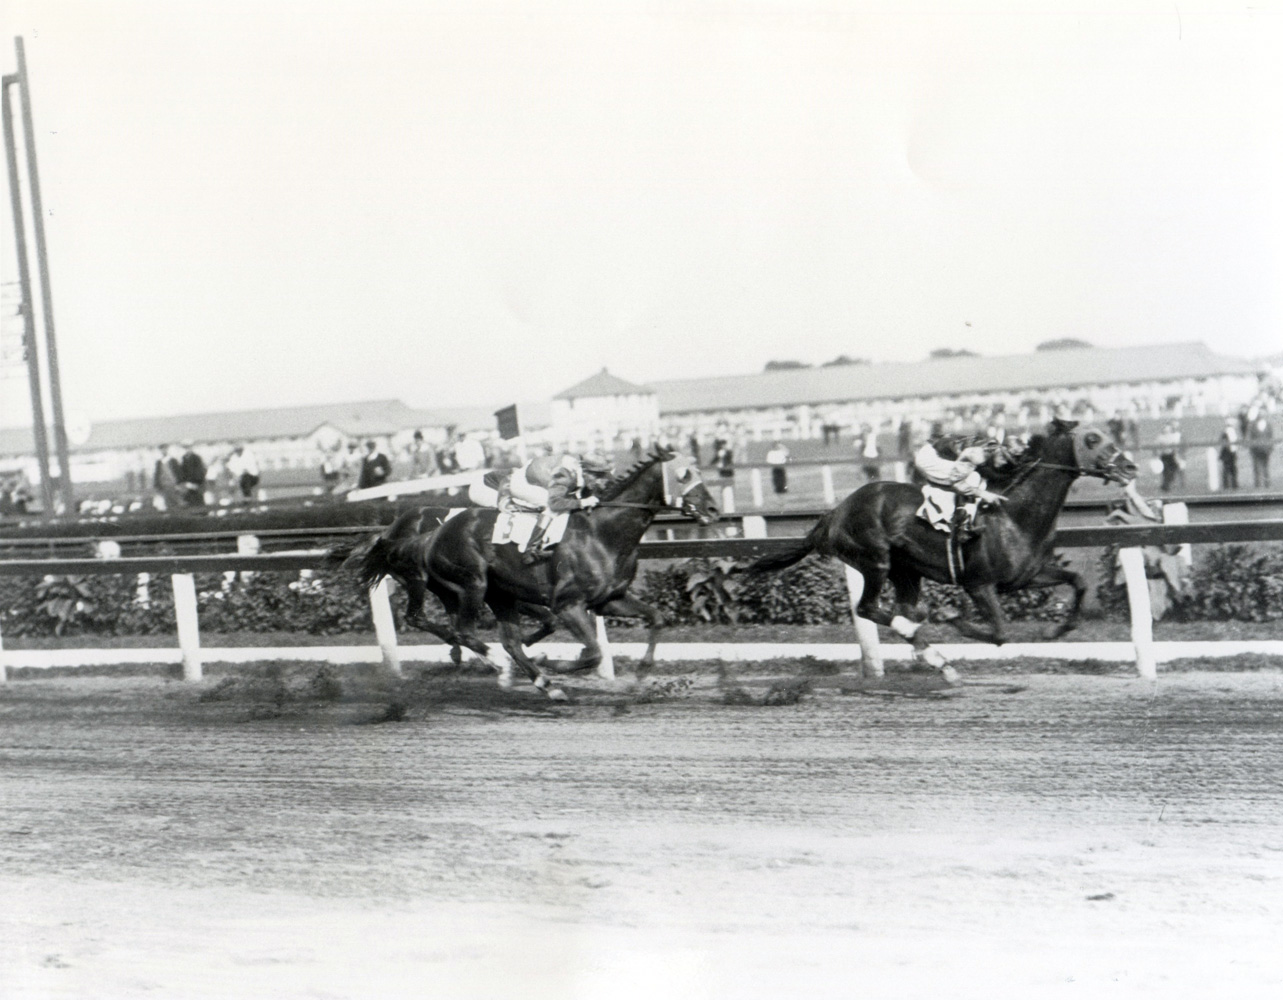 Sun Beau (Frank Coltiletti up) winning the 1929 Aqueduct Handicap at Aqueduct (Keeneland Library Cook Collection/Museum Collection)